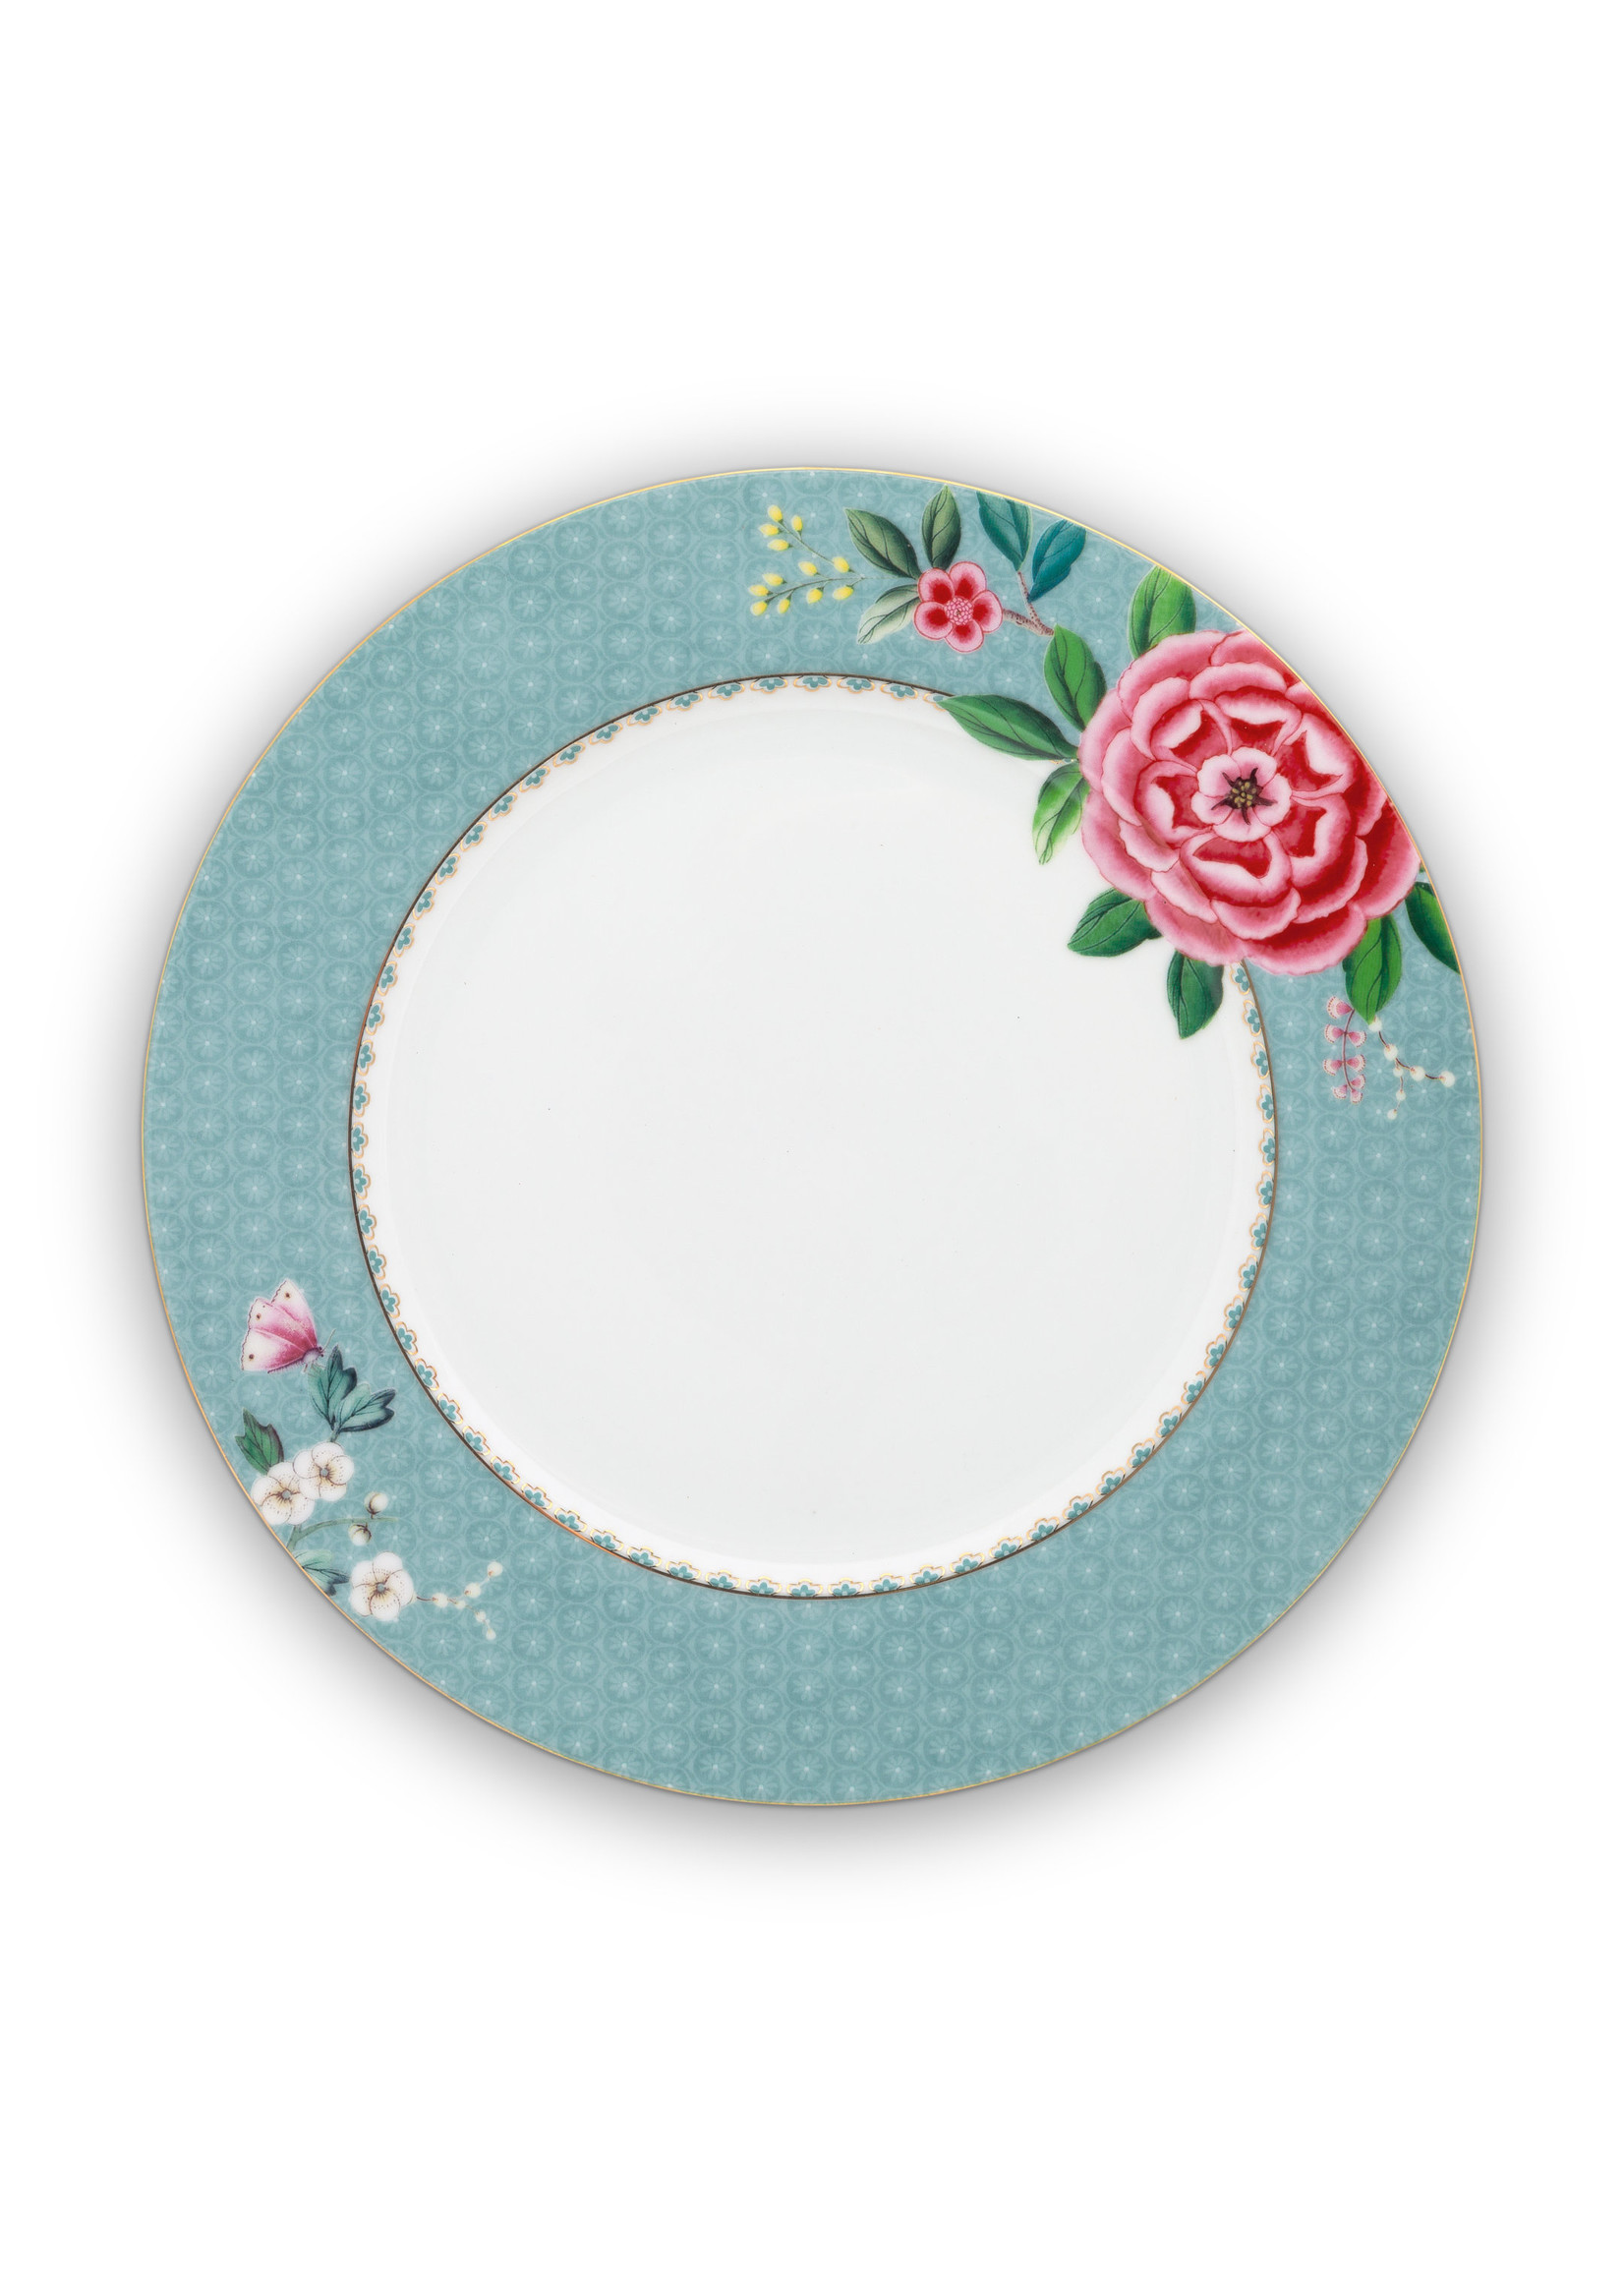 pip studio Plate blushing birds blue 26.5